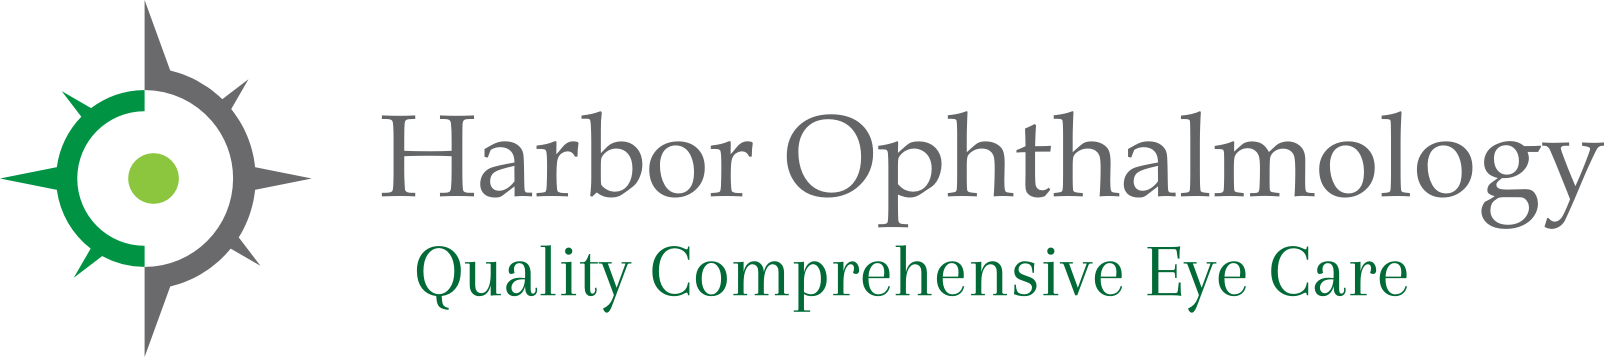 Harbor Ophthalmology Logo